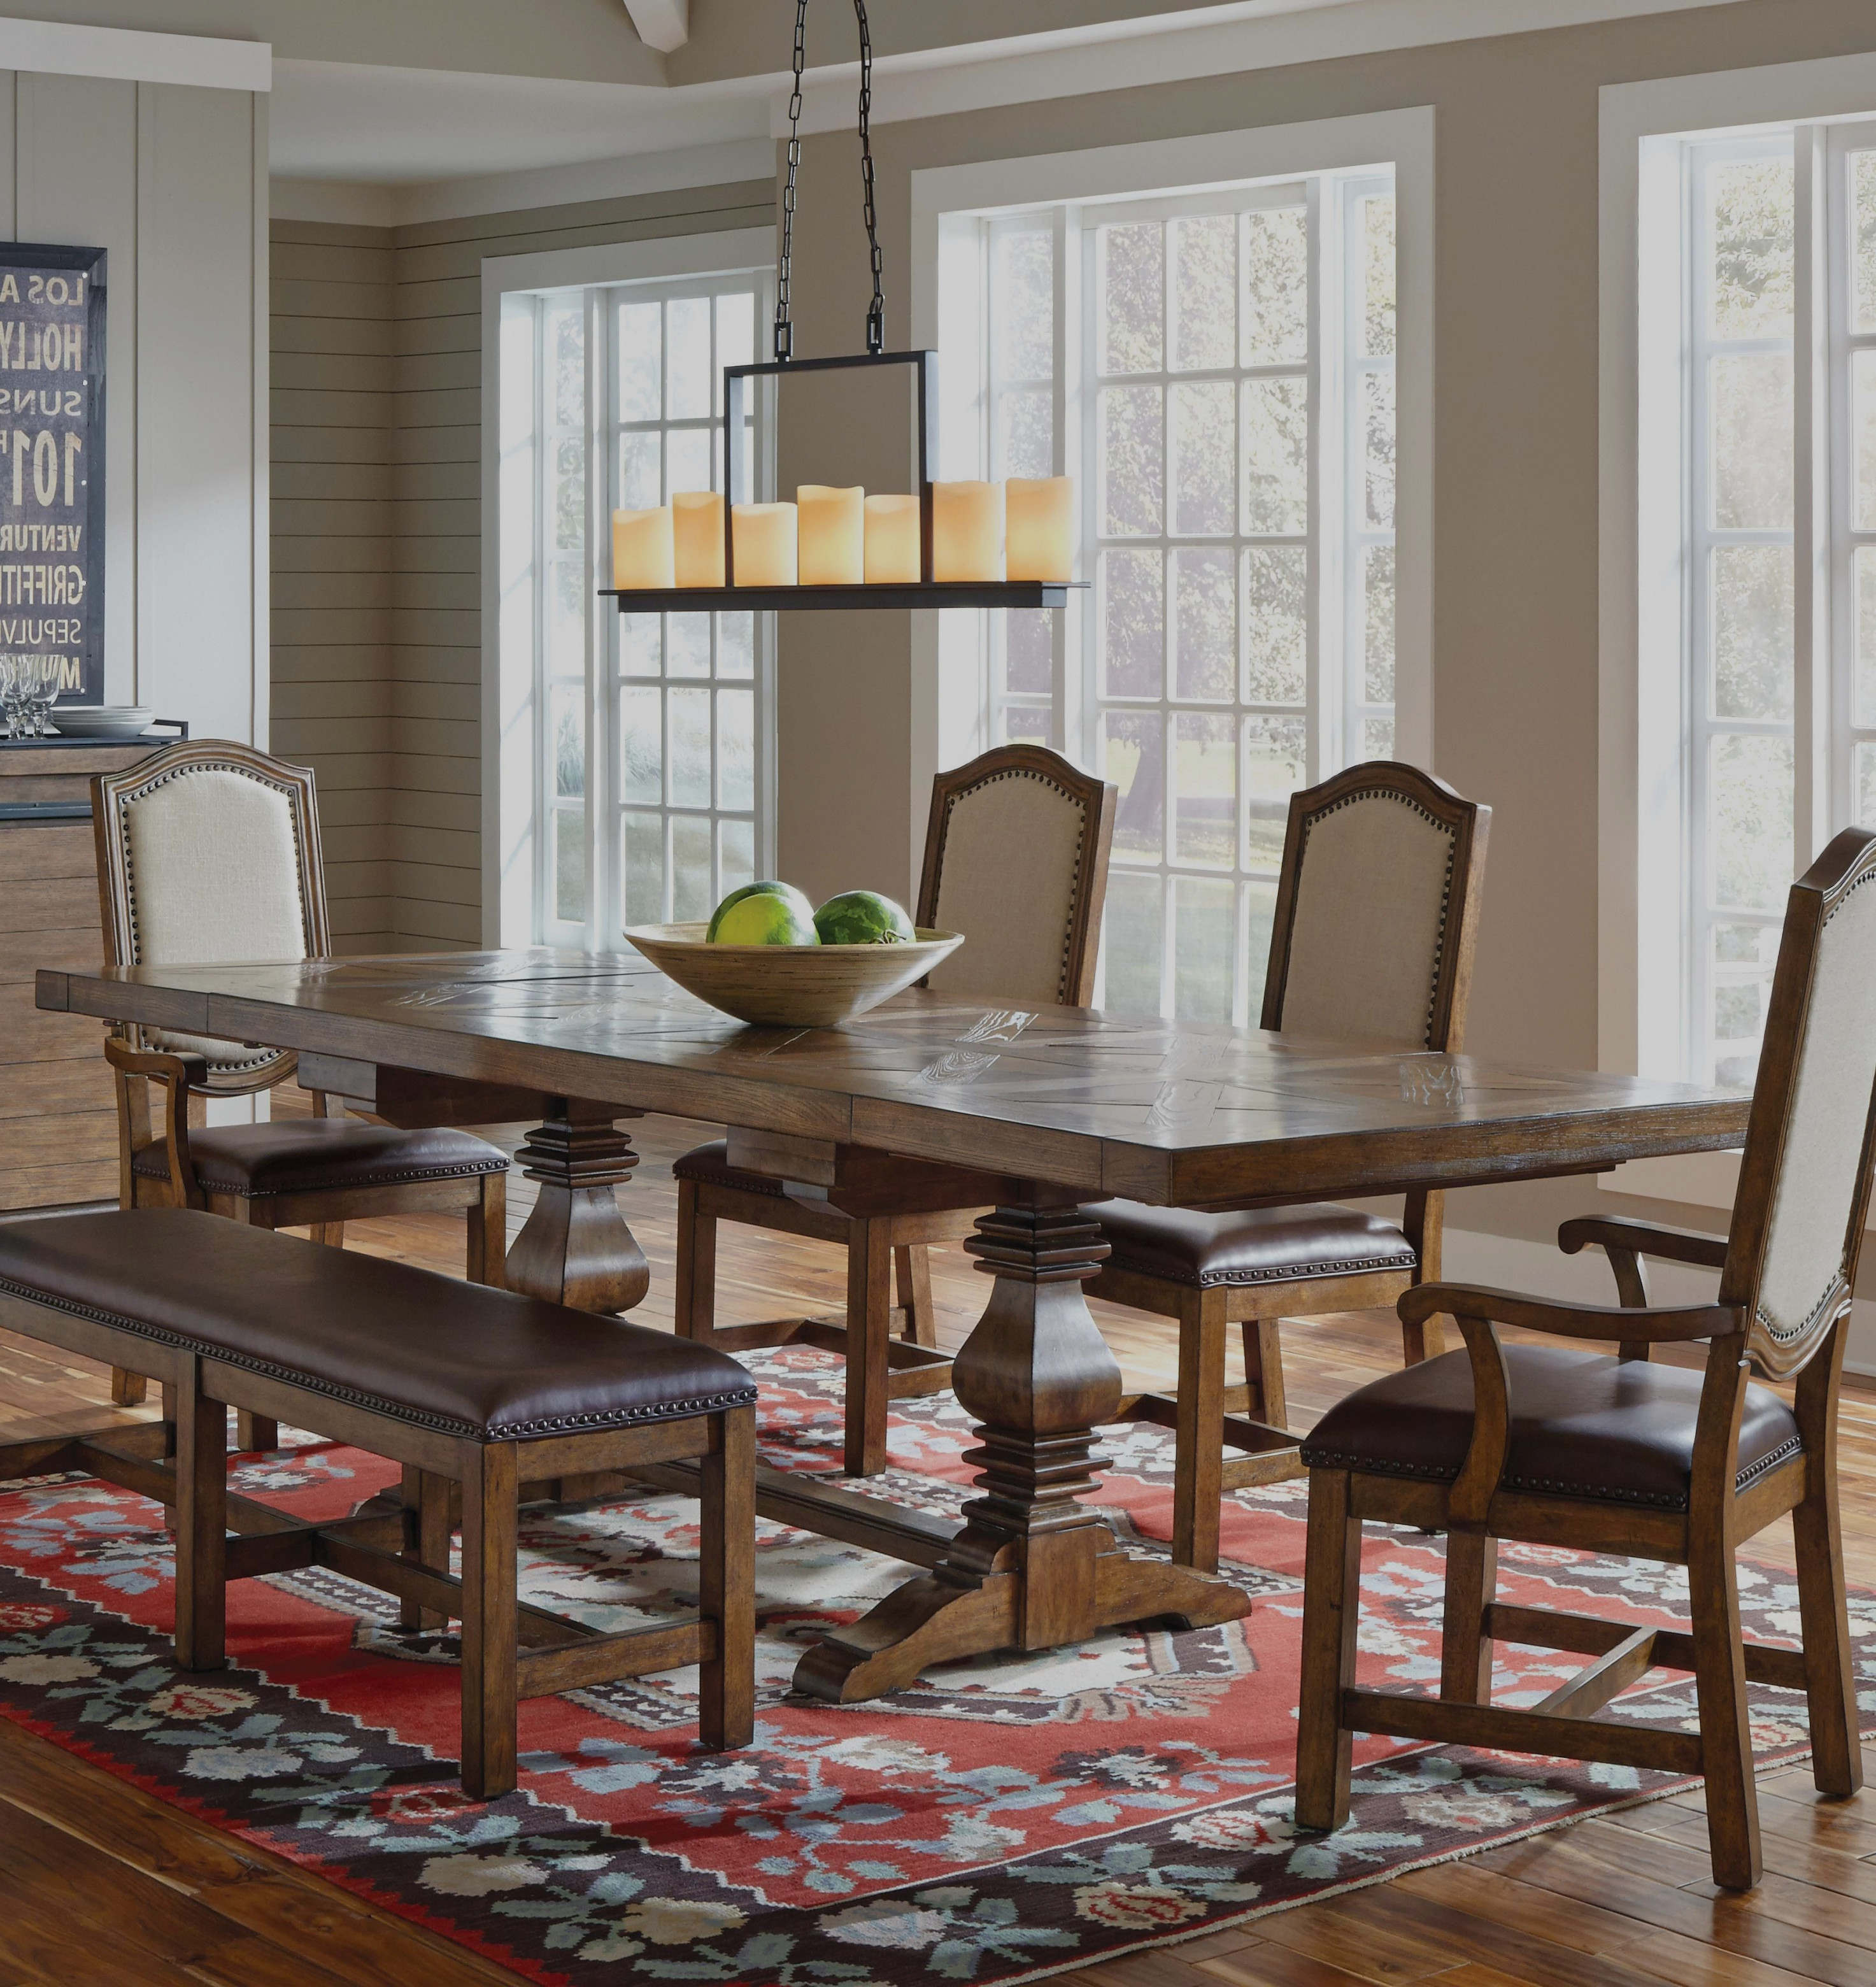 hardwood flooring sale of dining room sets for sale latest designs ideas at dining room with intended for dining room sets for sale latest designs ideas at dining room with wicker outdoor sofa 0d